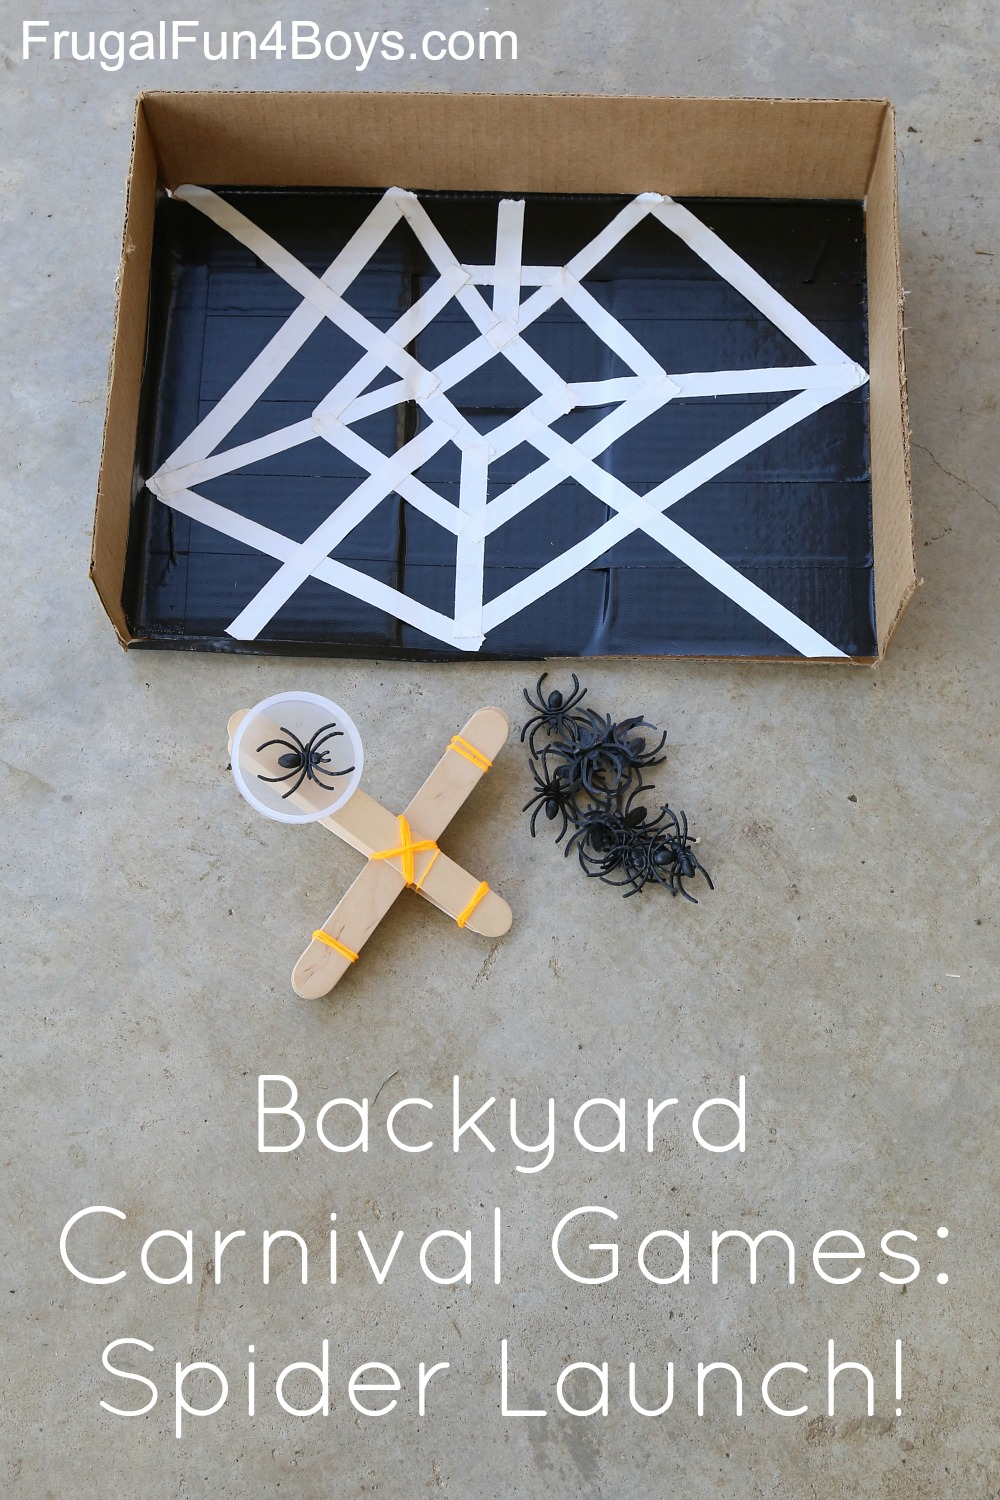 Backyard Carnival Games:  Spider Launch